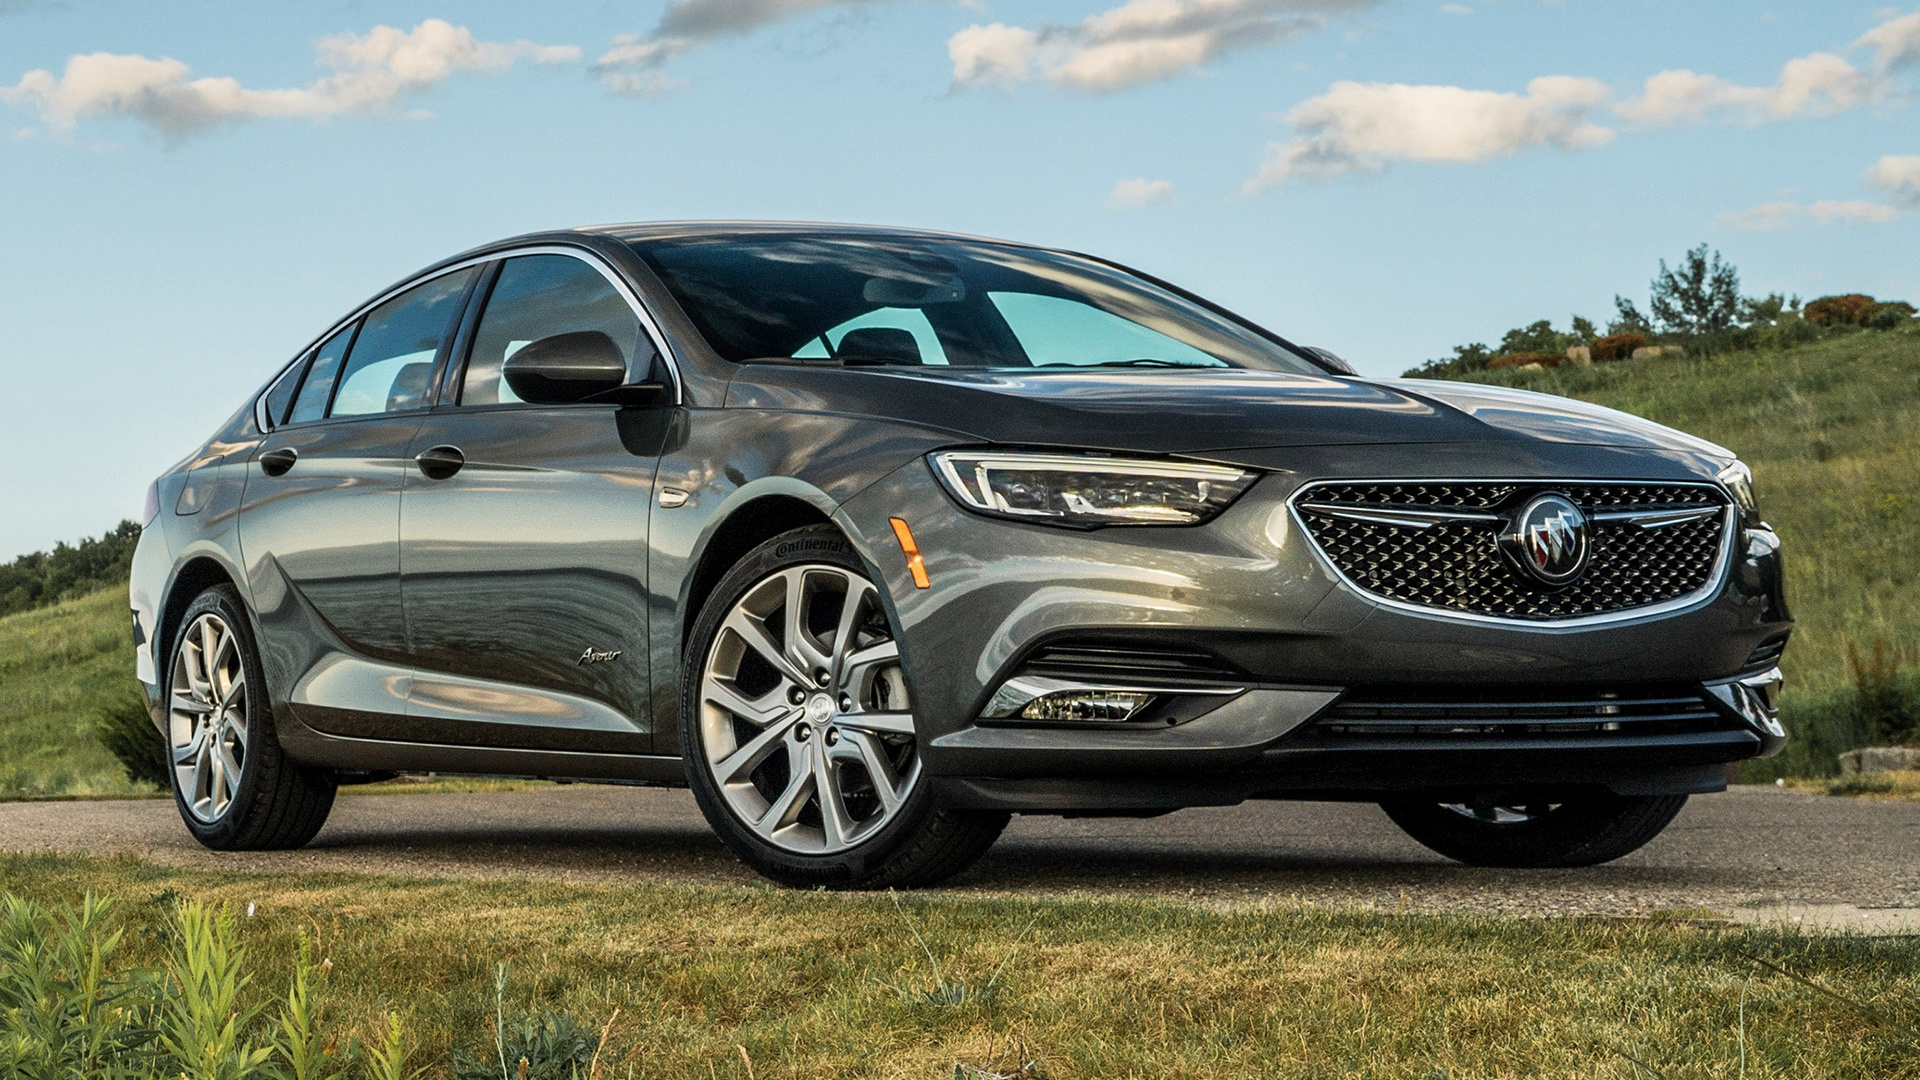 2019 Buick Regal Avenir - Wallpapers and HD Images | Car Pixel